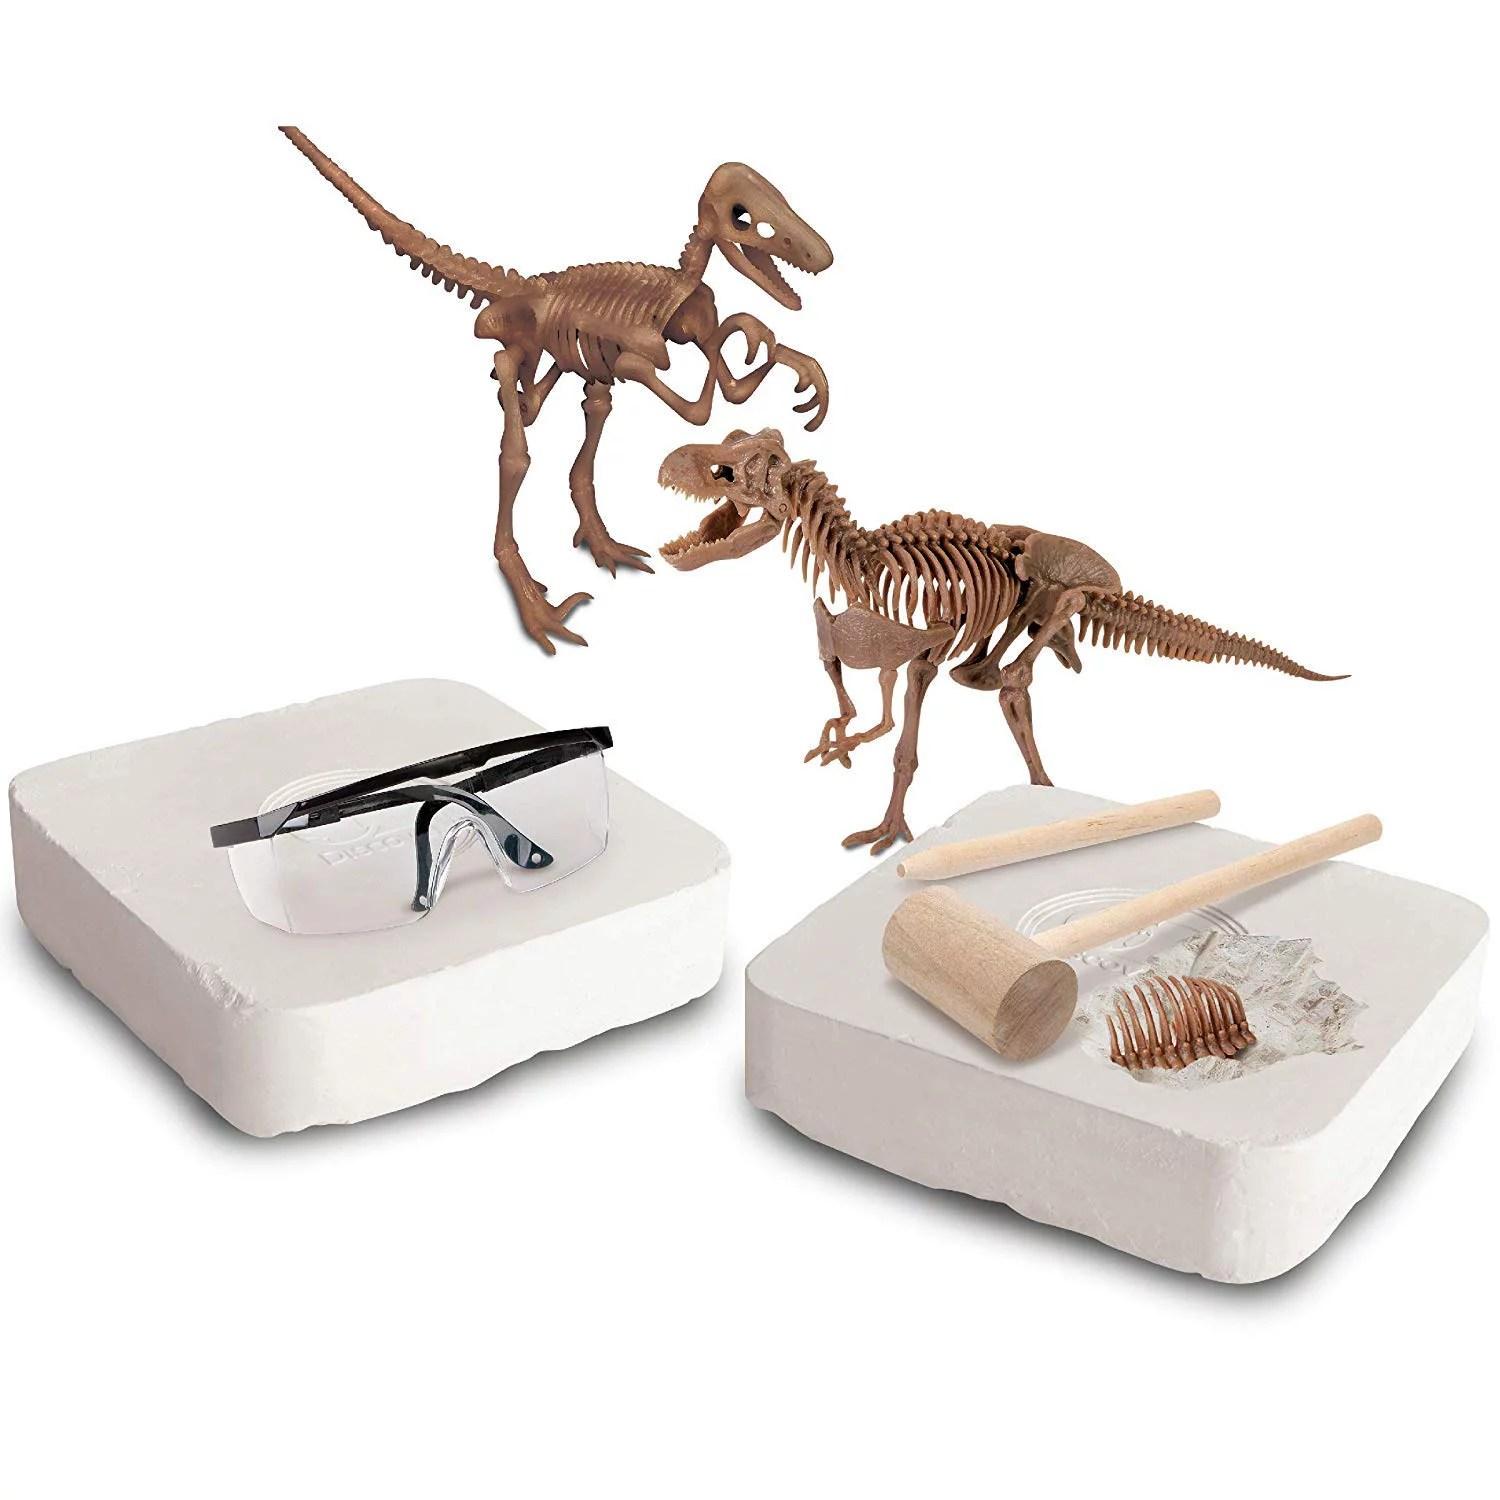 Discovery Mindblown Toy Dinosaur 3d Fossil Skeleton